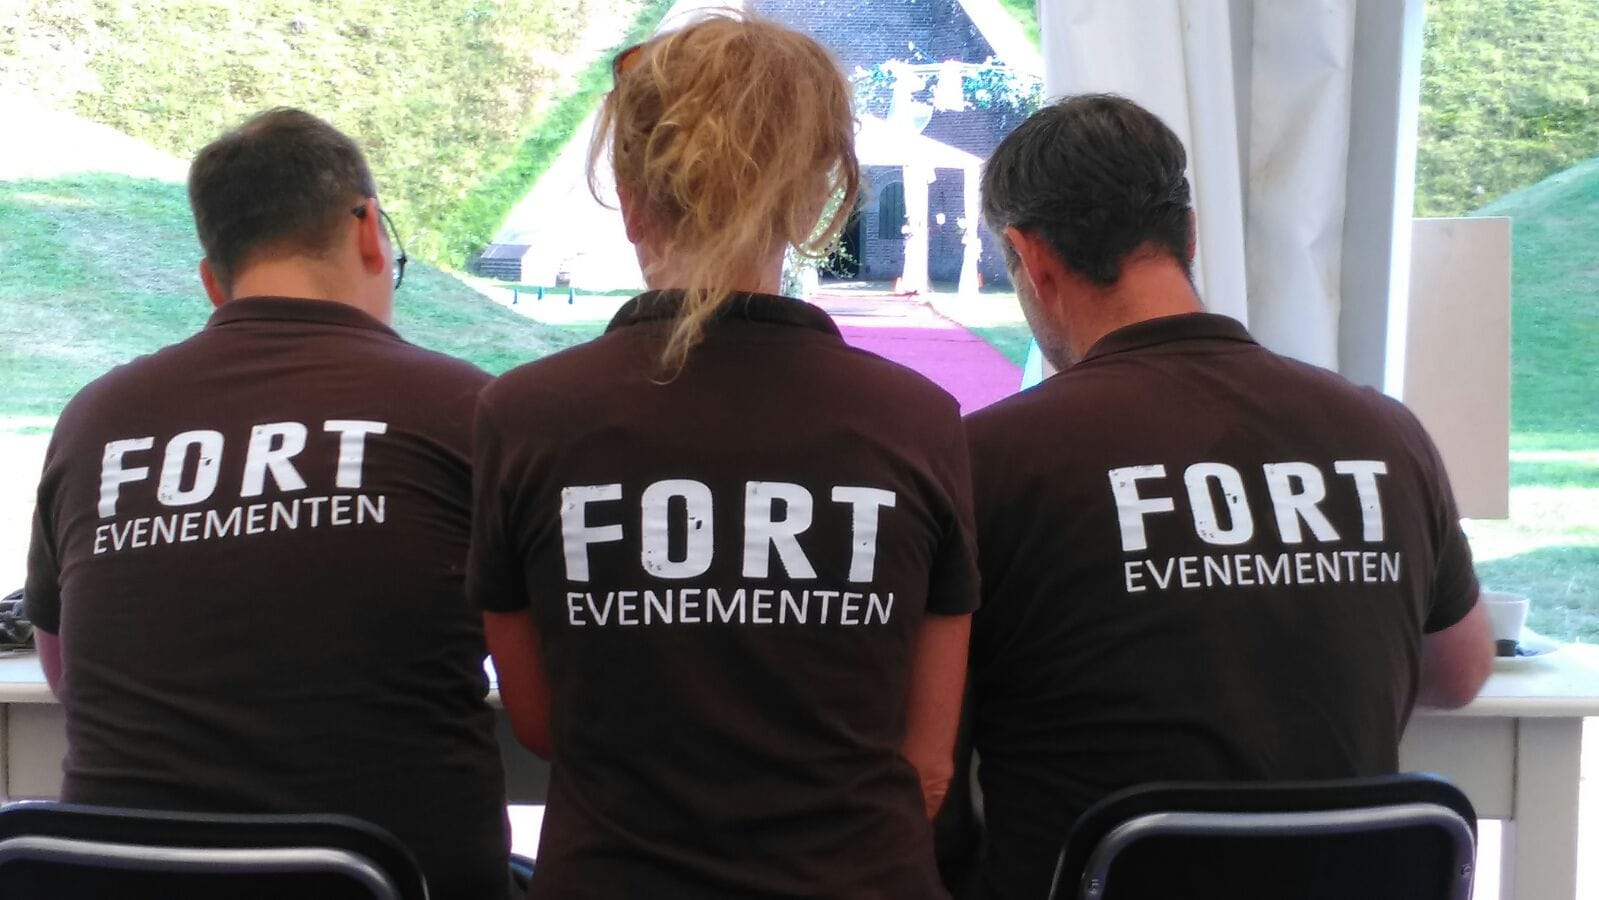 team fort evenementen